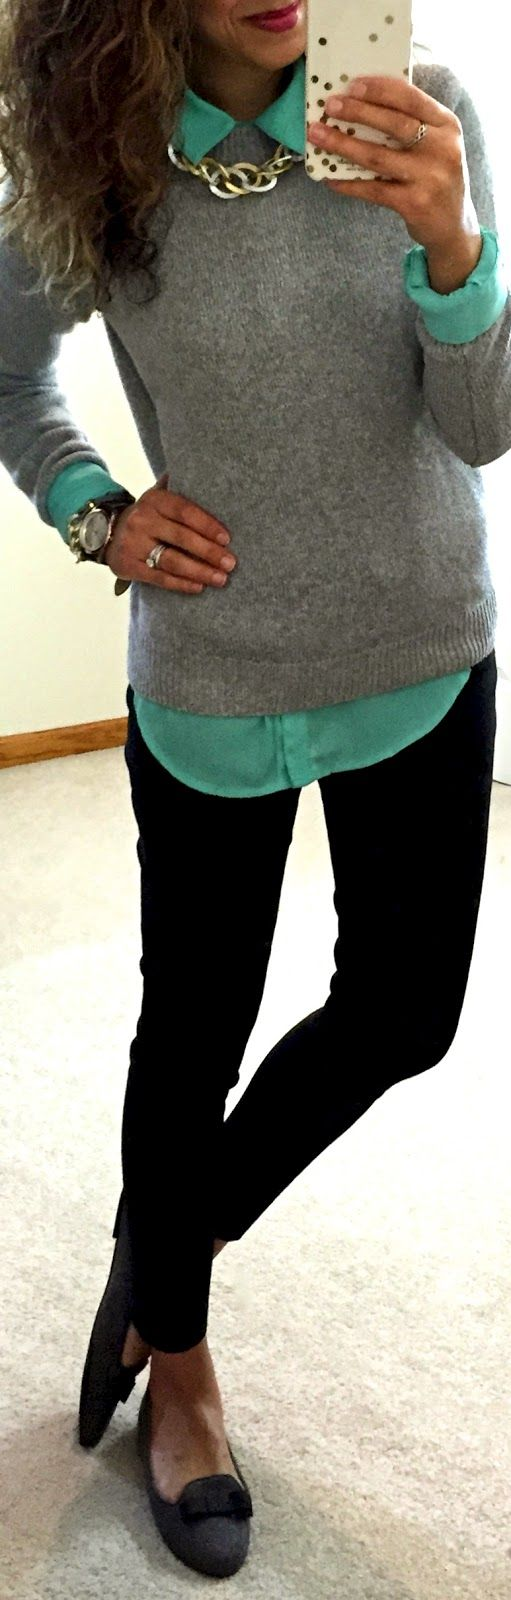 Really like the blouse/sweater/necklace look and cute with black pants for work (but nothing a fan of the mint color)